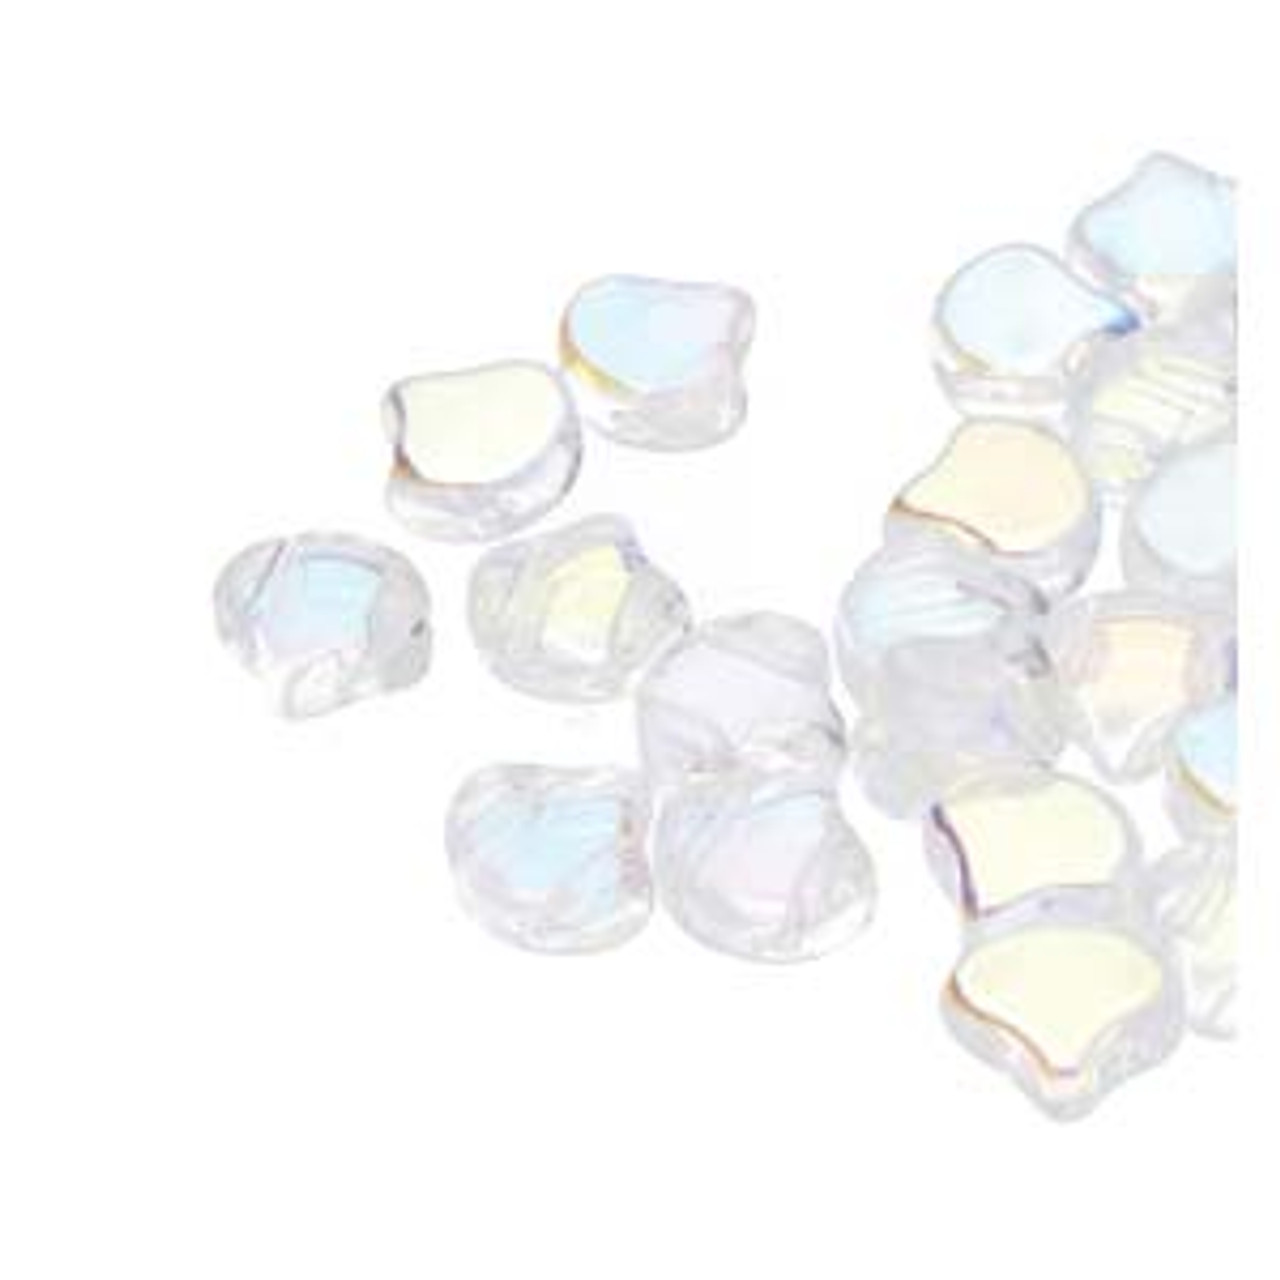 7.5x7.5mm Crystal AB Two Hole Ginko Beads (8 Grams) Approx 30-35 Beads